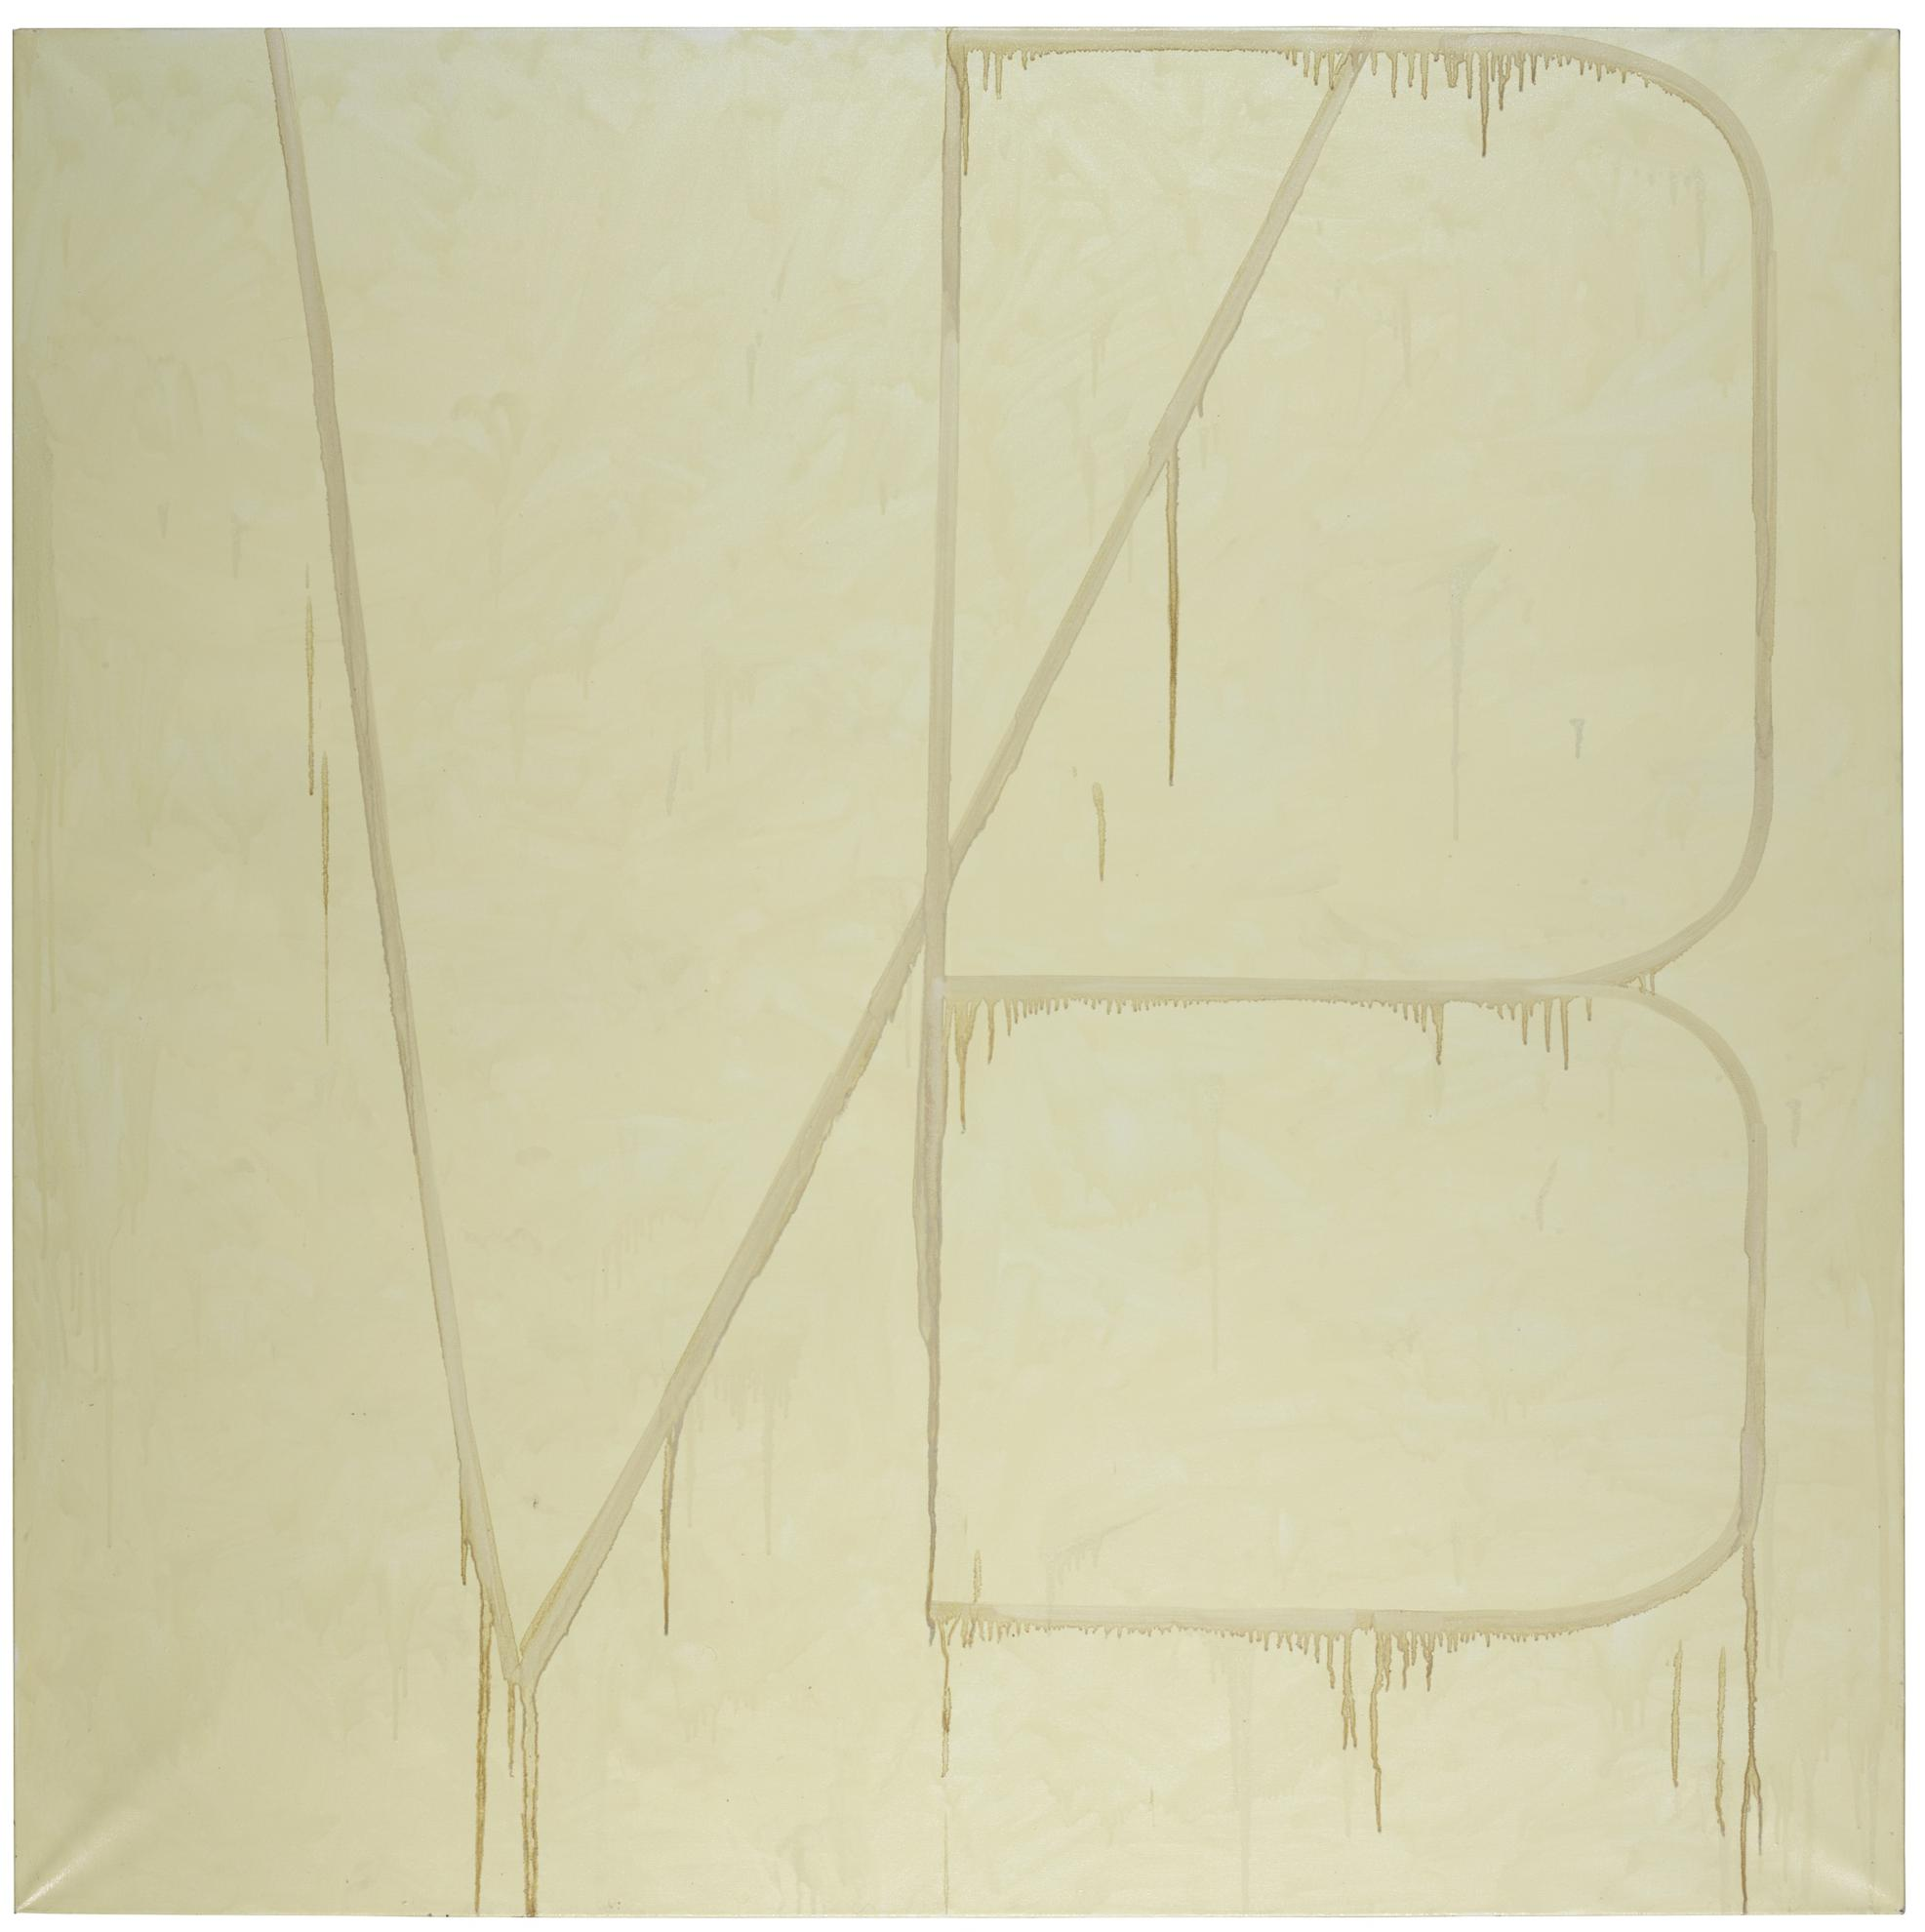 Wilhelm Sasnal-Varnish And Butter-2007